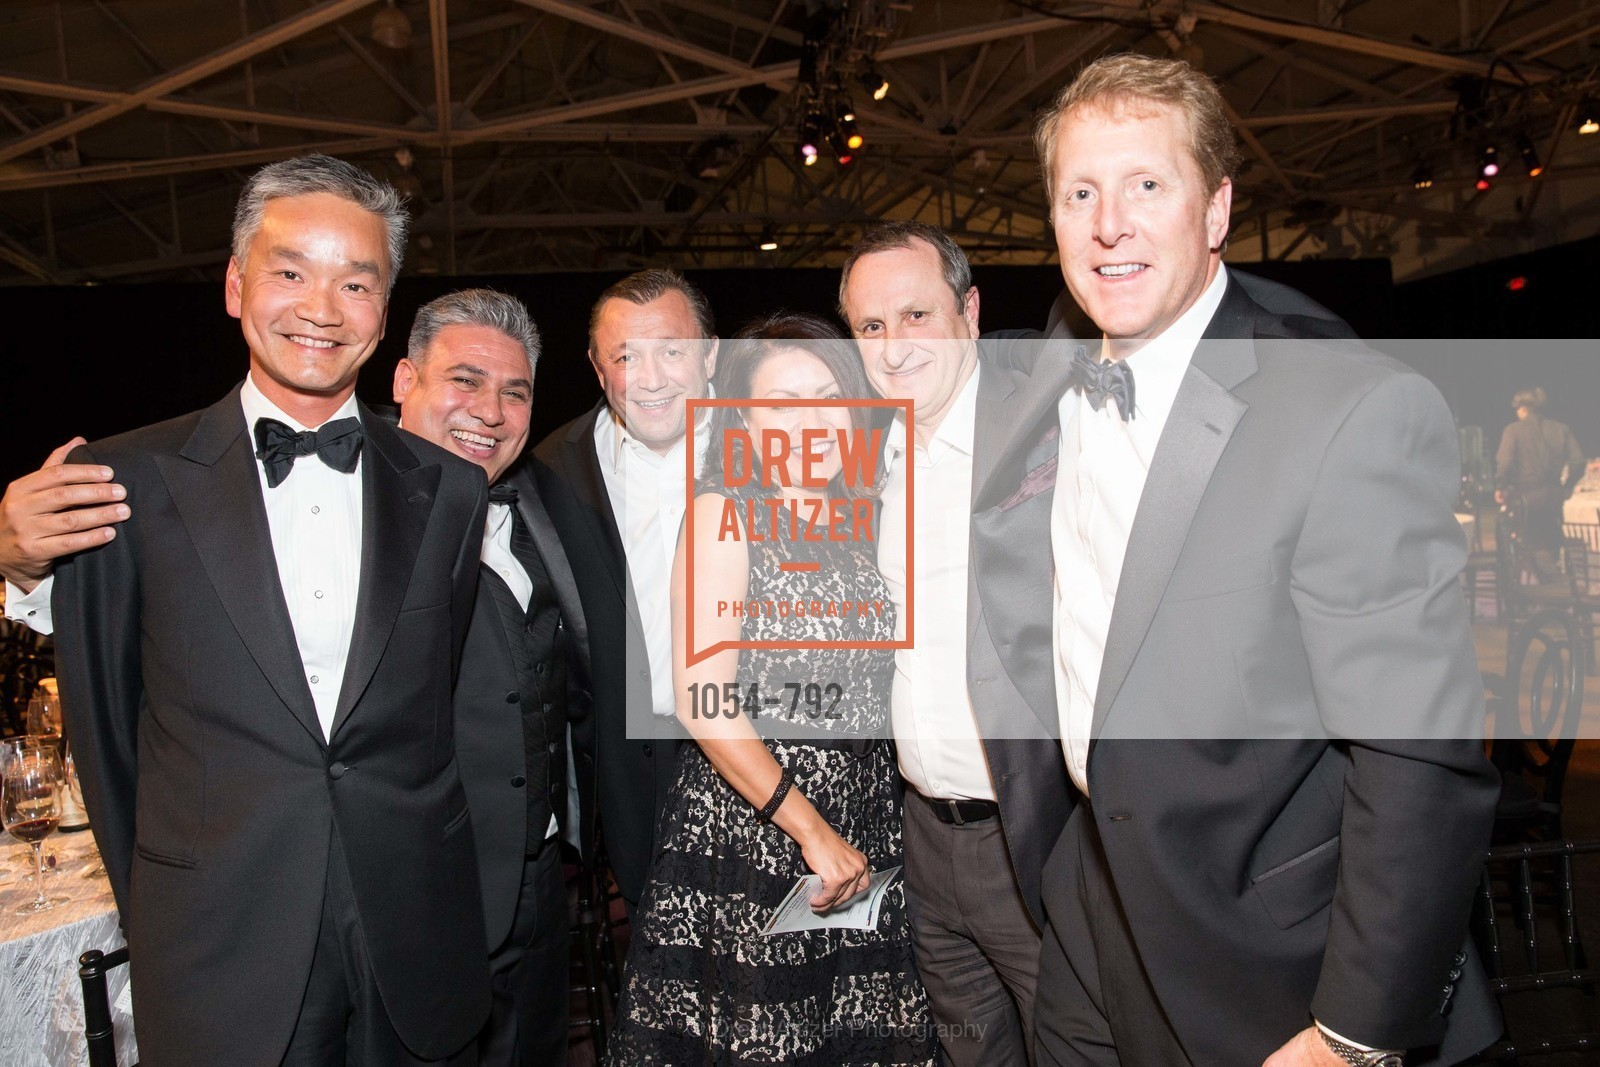 Charles Chi, John China, Laurent Manrique, Selena China, Gerald Hirigoyen, Harry Eggers, MEALS ON WHEELS OF SAN FRANCISCO'S 28th Annual Star Chefs and Vintners Gala, US, April 20th, 2015,Drew Altizer, Drew Altizer Photography, full-service agency, private events, San Francisco photographer, photographer california